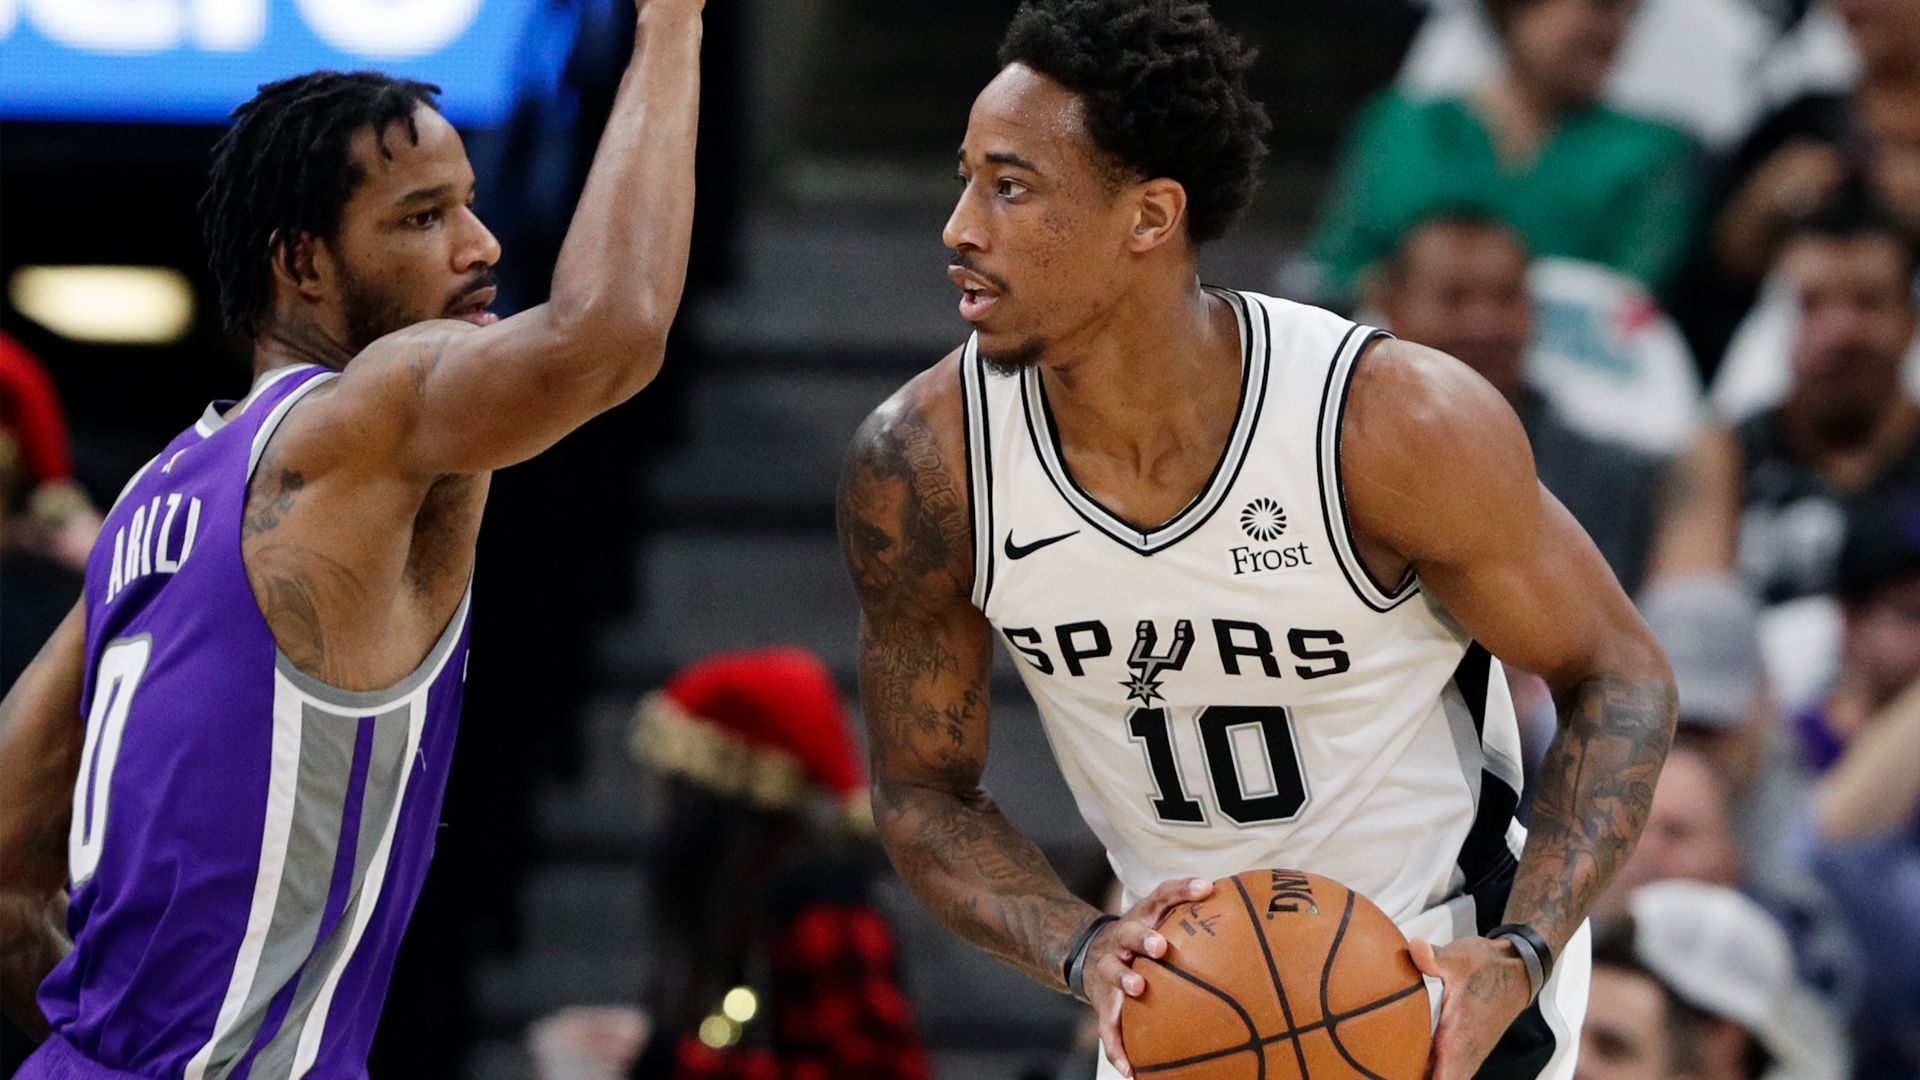 NBA admits missed call at end of Kings' loss to Spurs